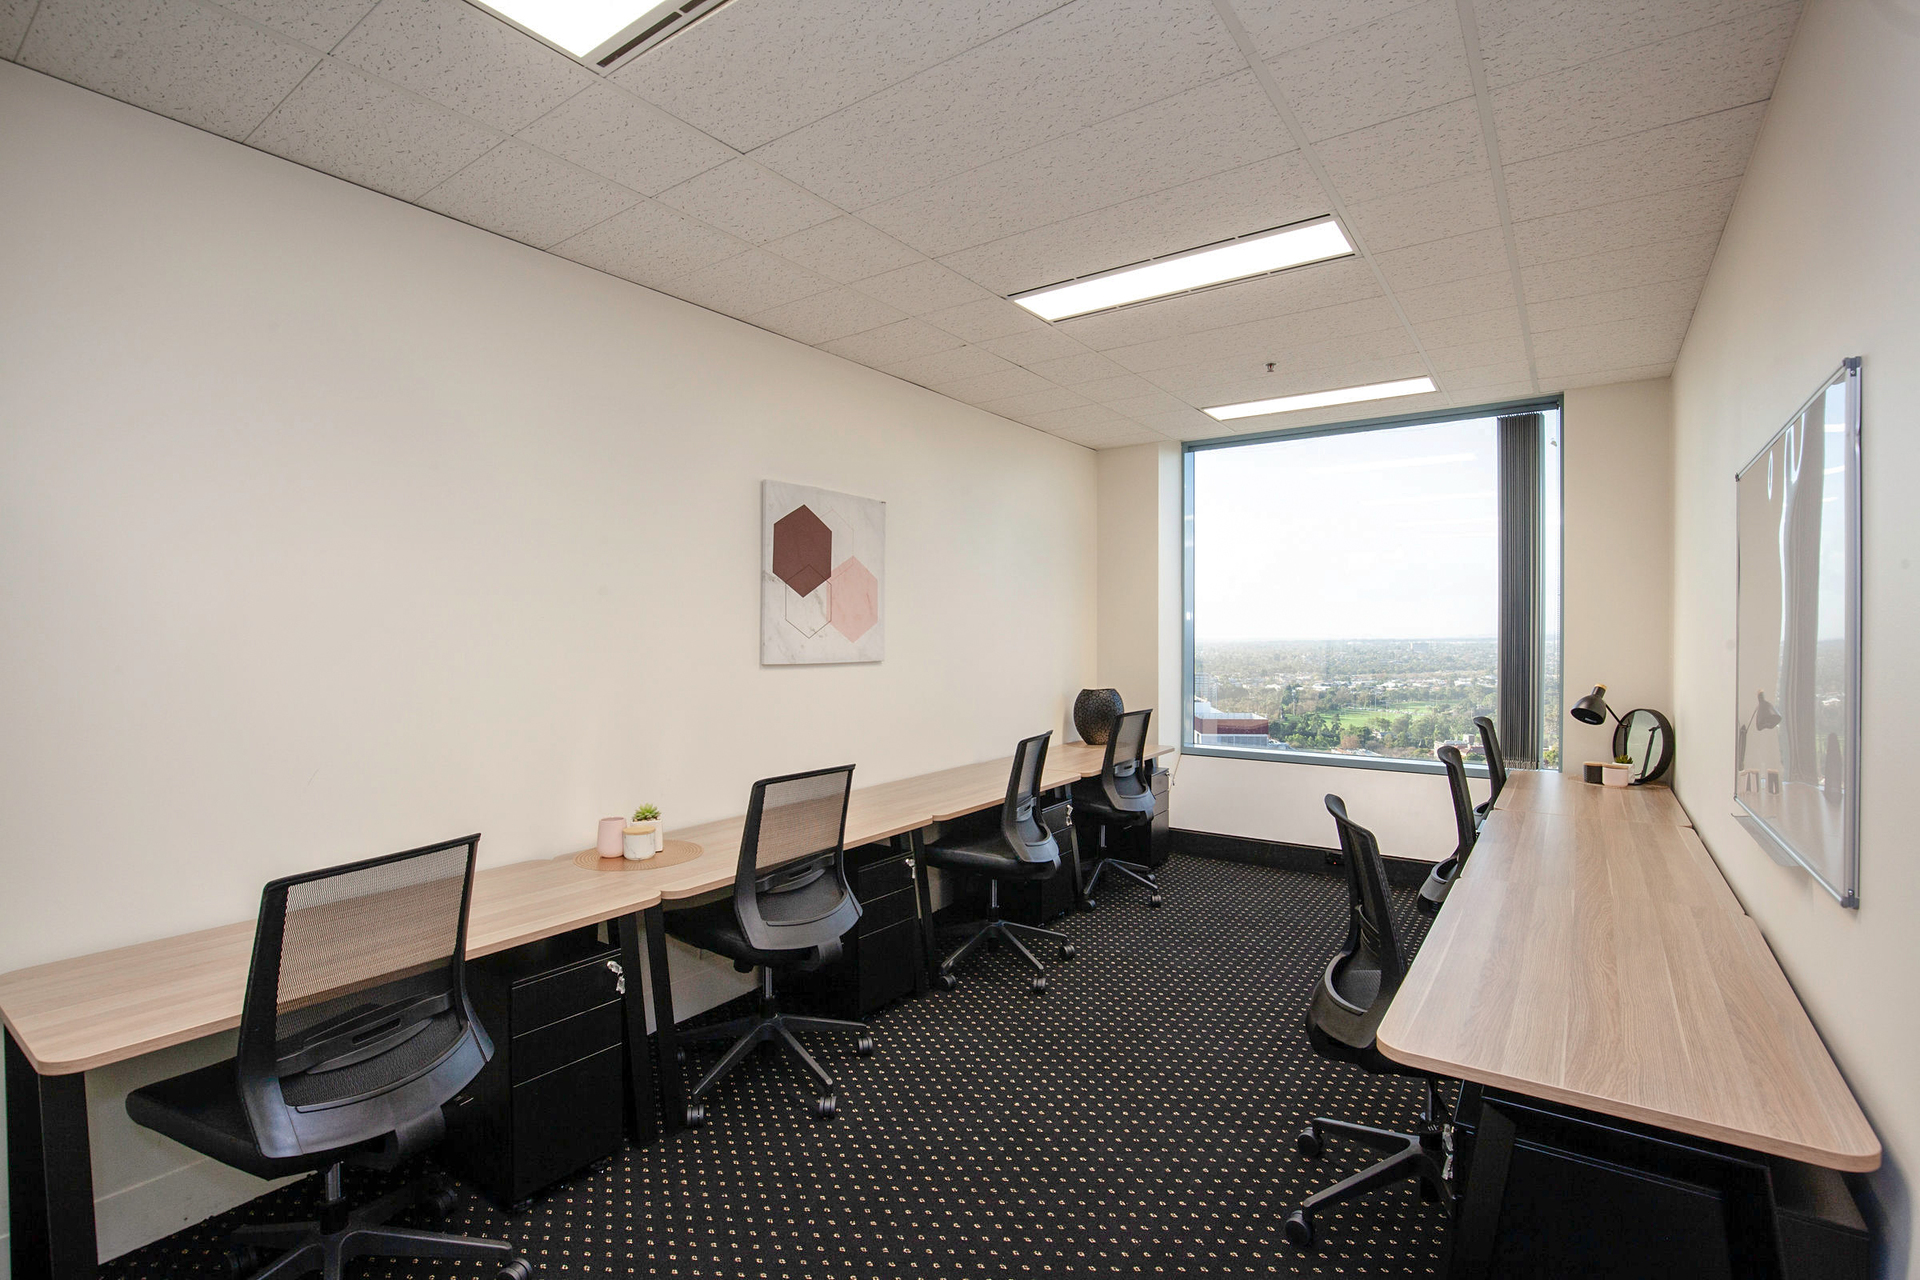 8-person collaborative workspace with outstanding views across Adelaide's skyline